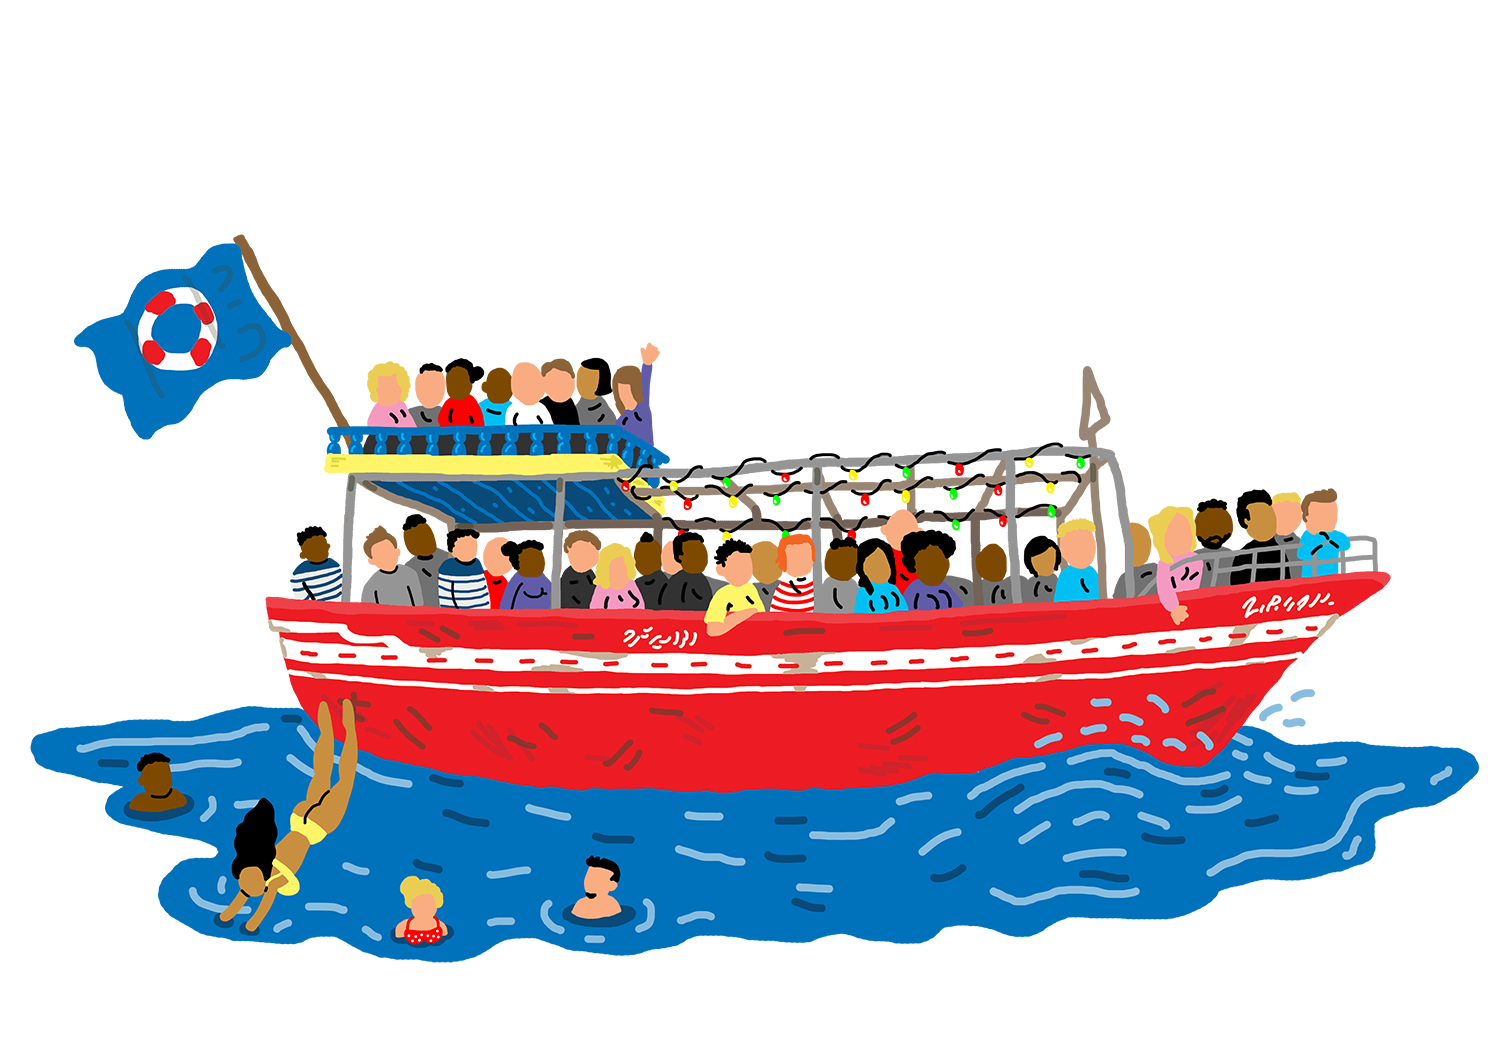 image library stock Boat clipart boat ride. Cruise pencil and in.